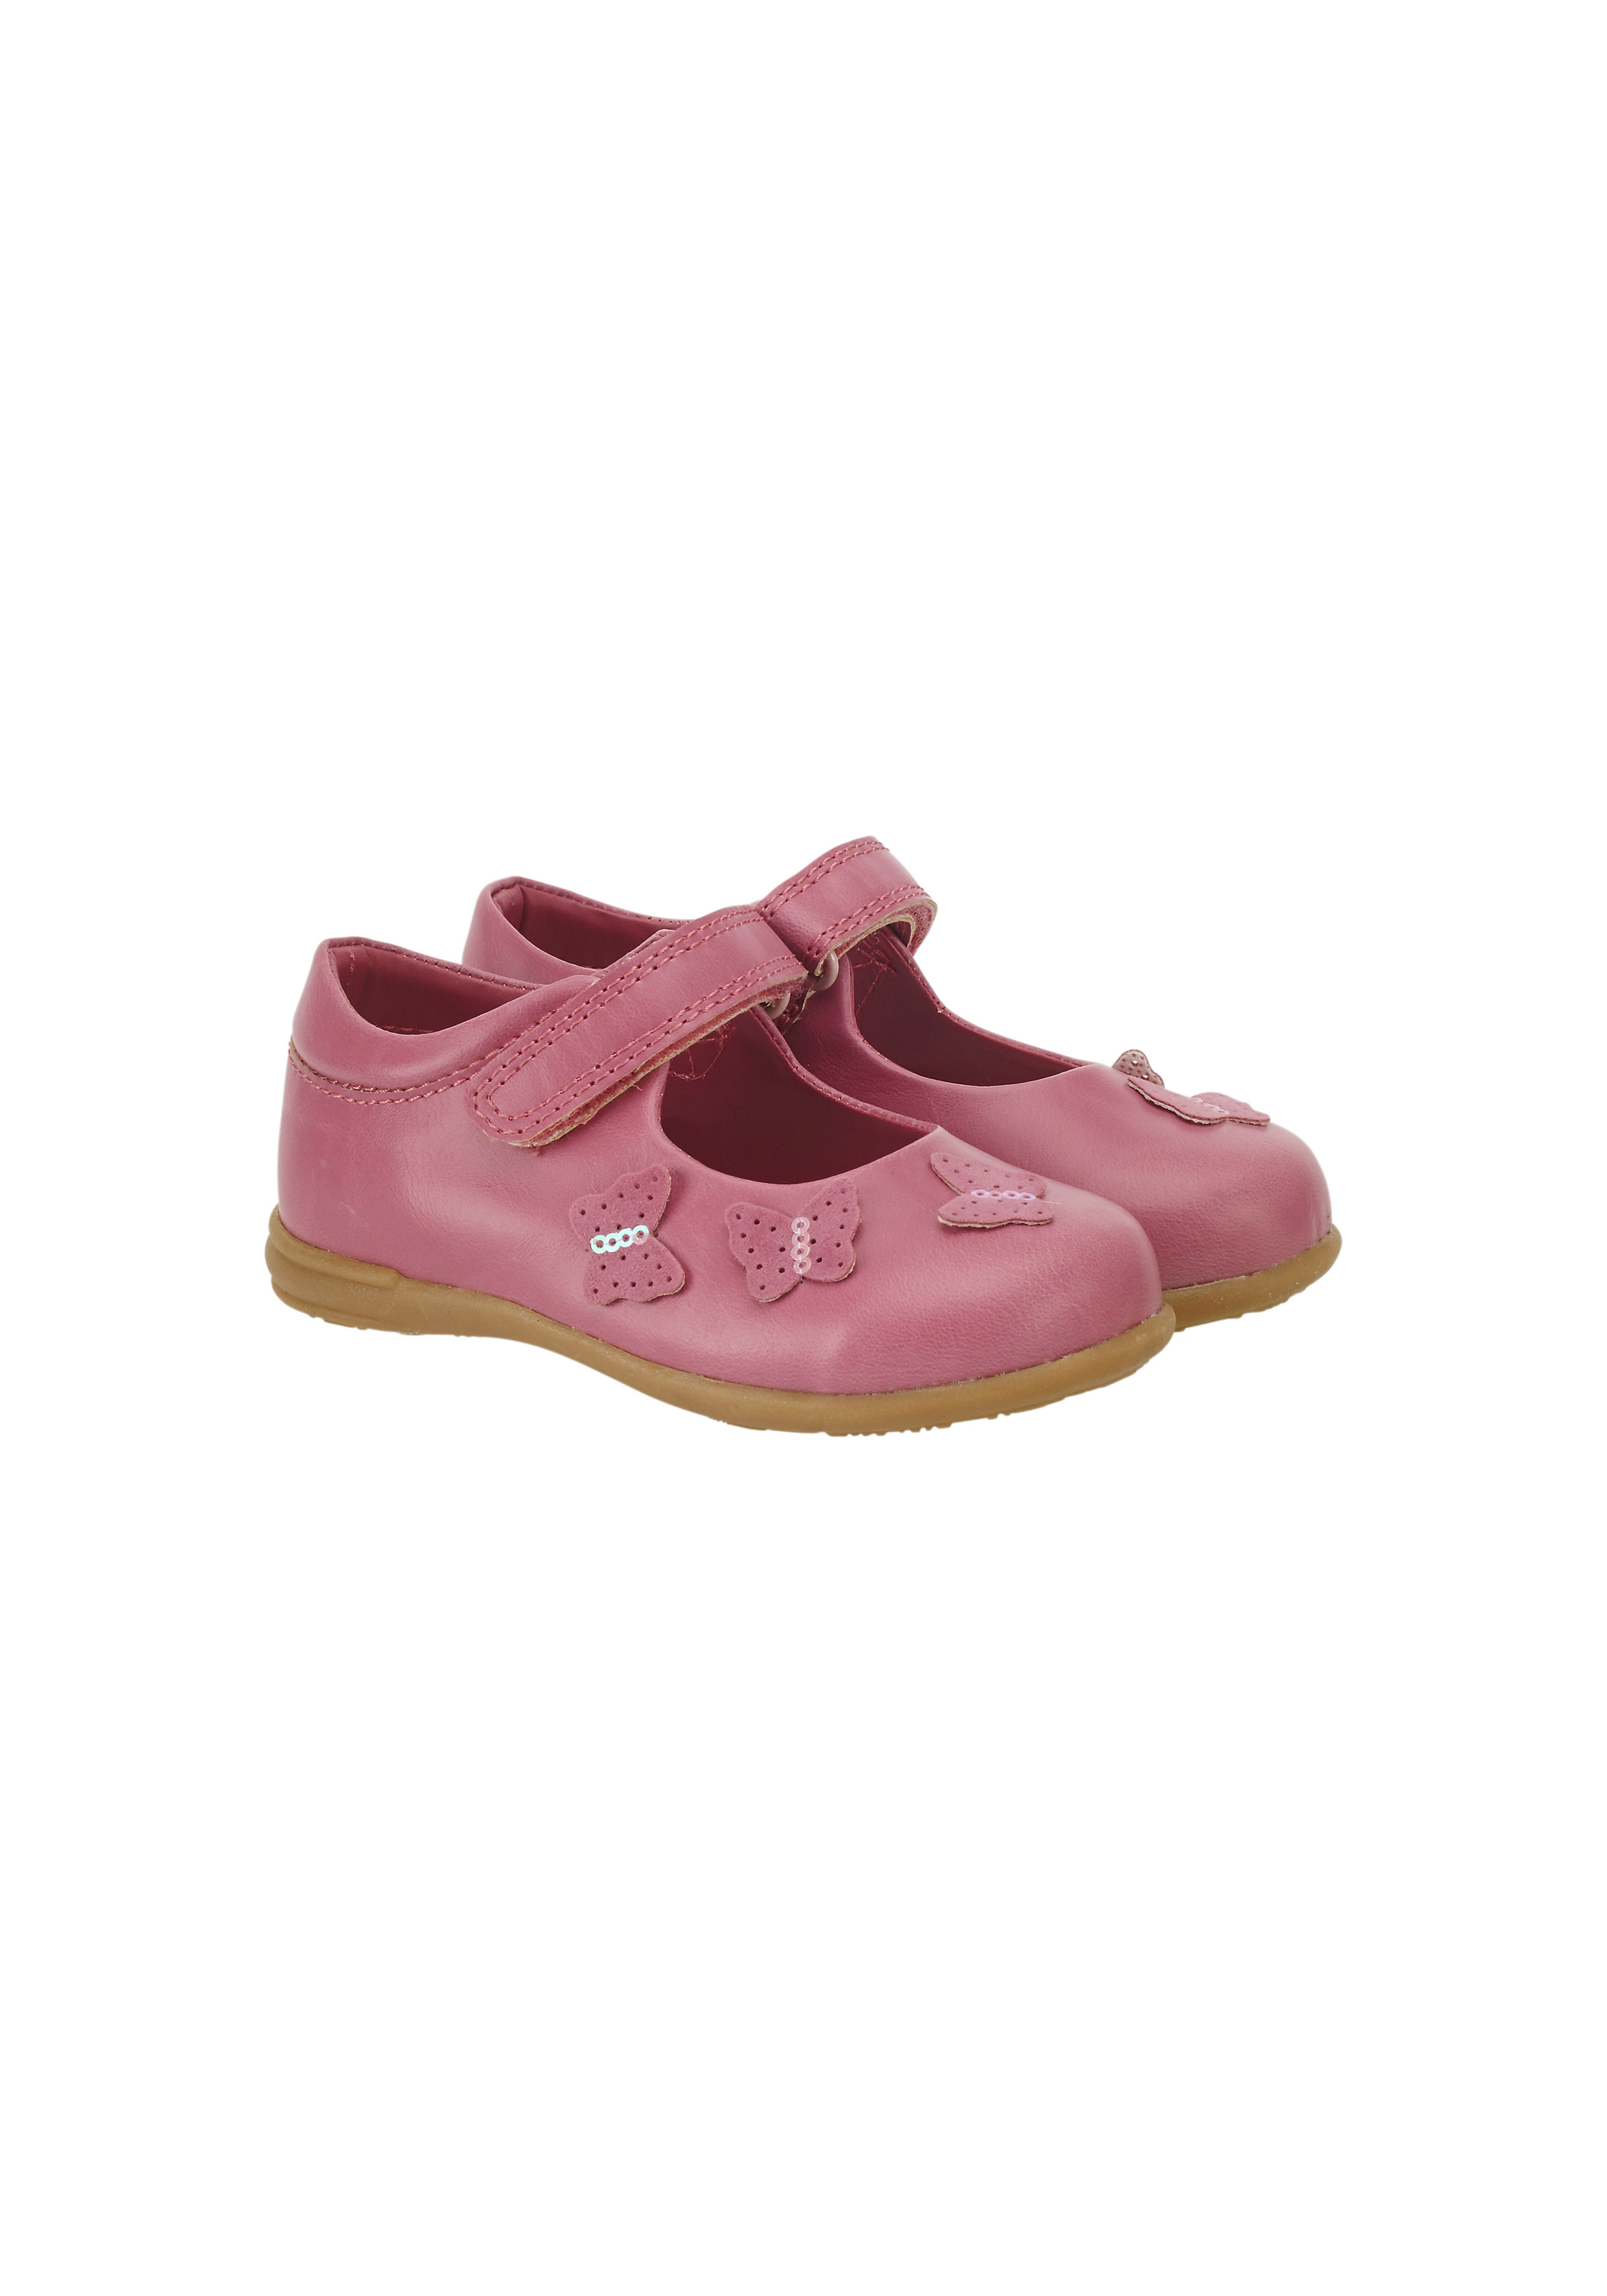 Mothercare | Girls First Walker Shoes Butterfly Design - Pink